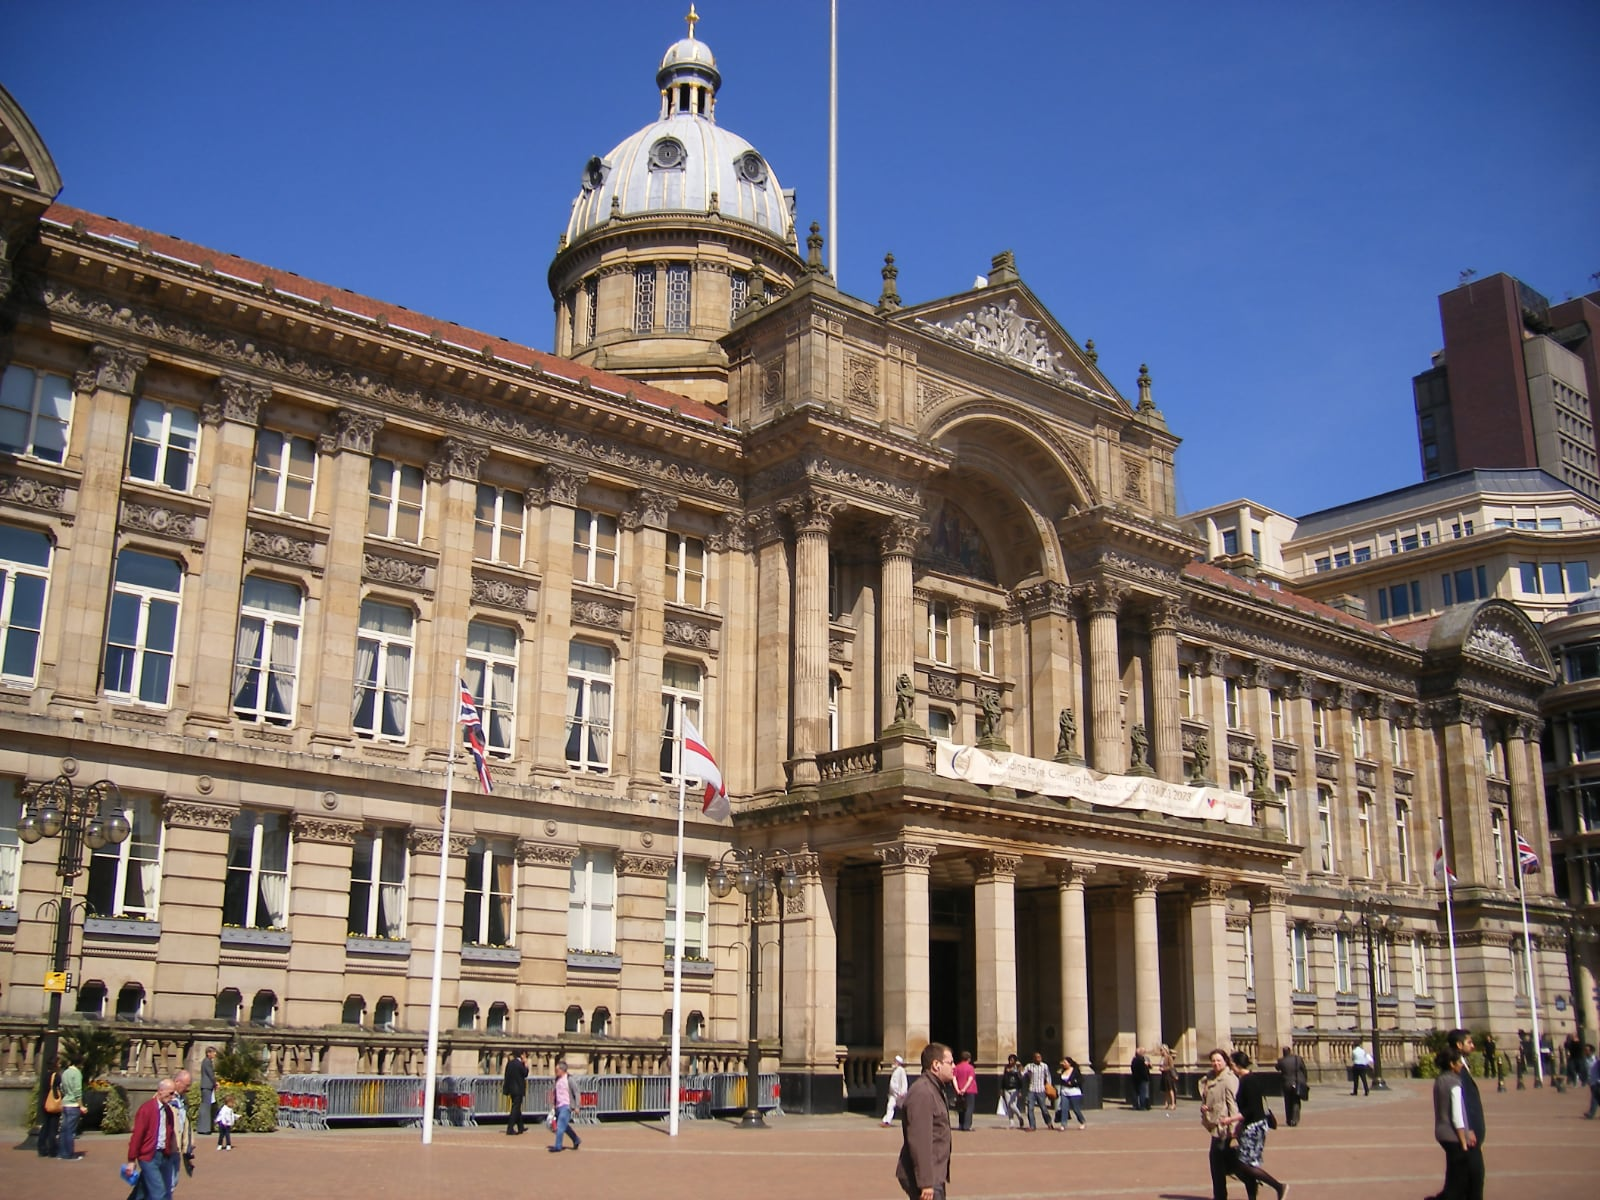 Photo of Birmingham UK City Council building front facade in front of clear blue sky